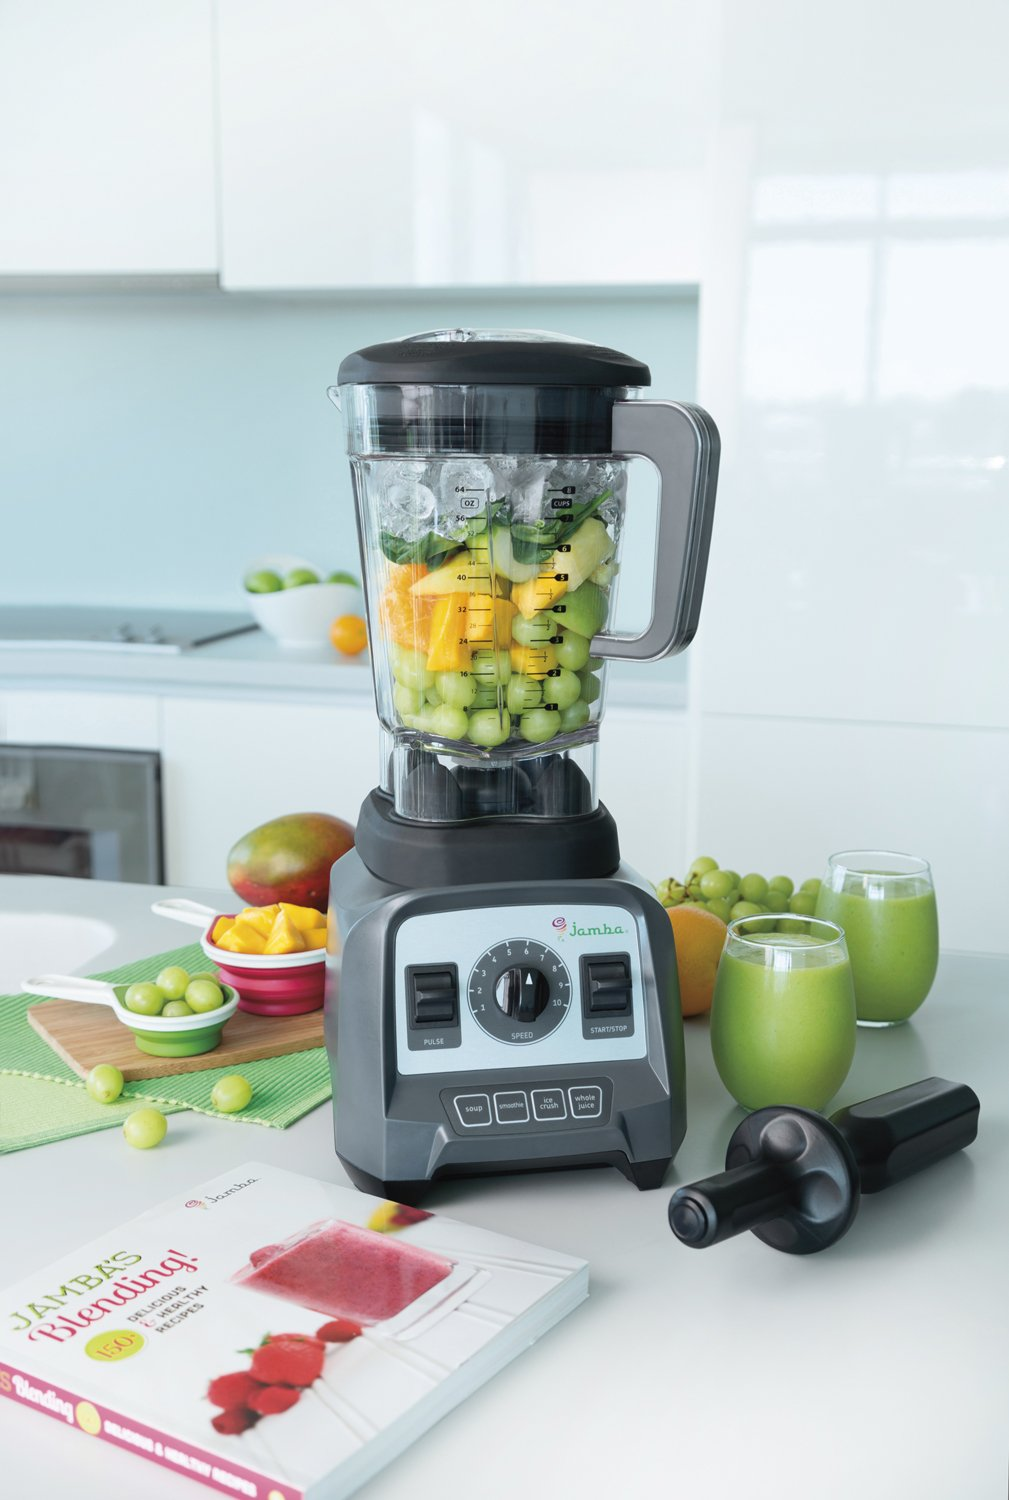 Jamba Appliances 2.4 hp Blender